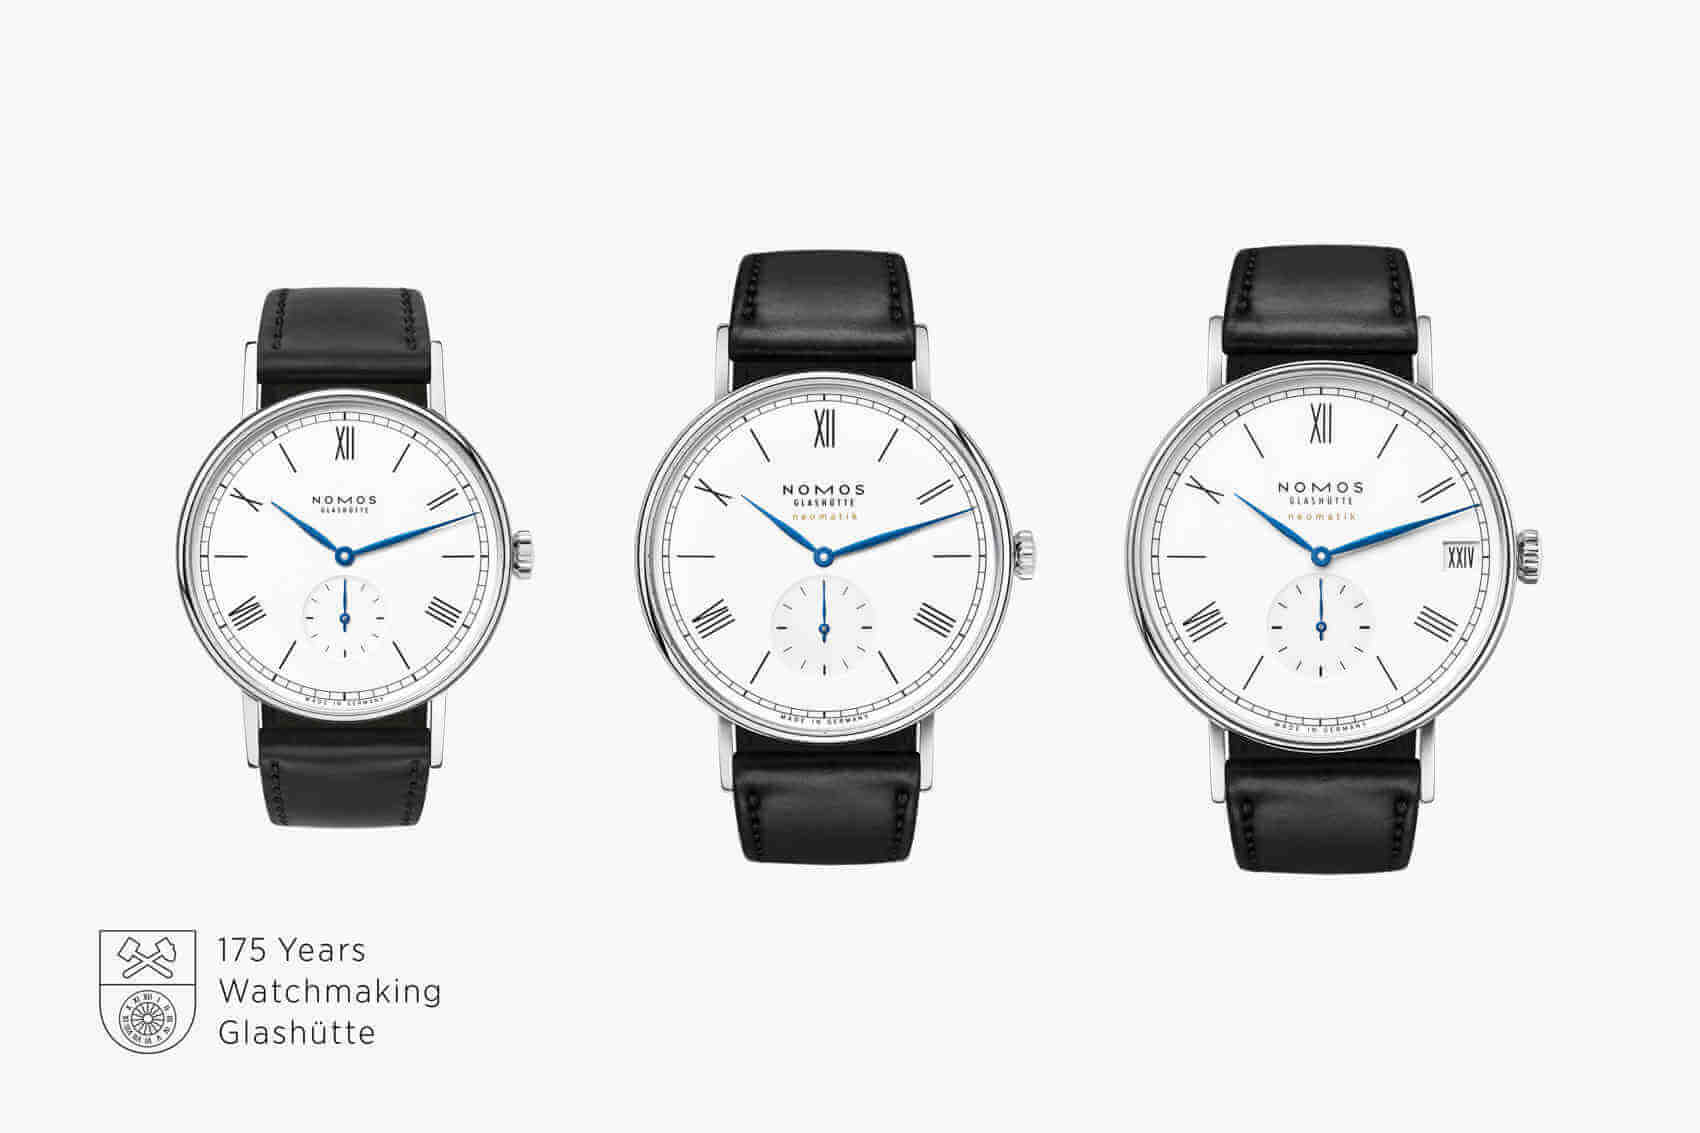 Ludwig 175 Years Watchmaking Glashütte